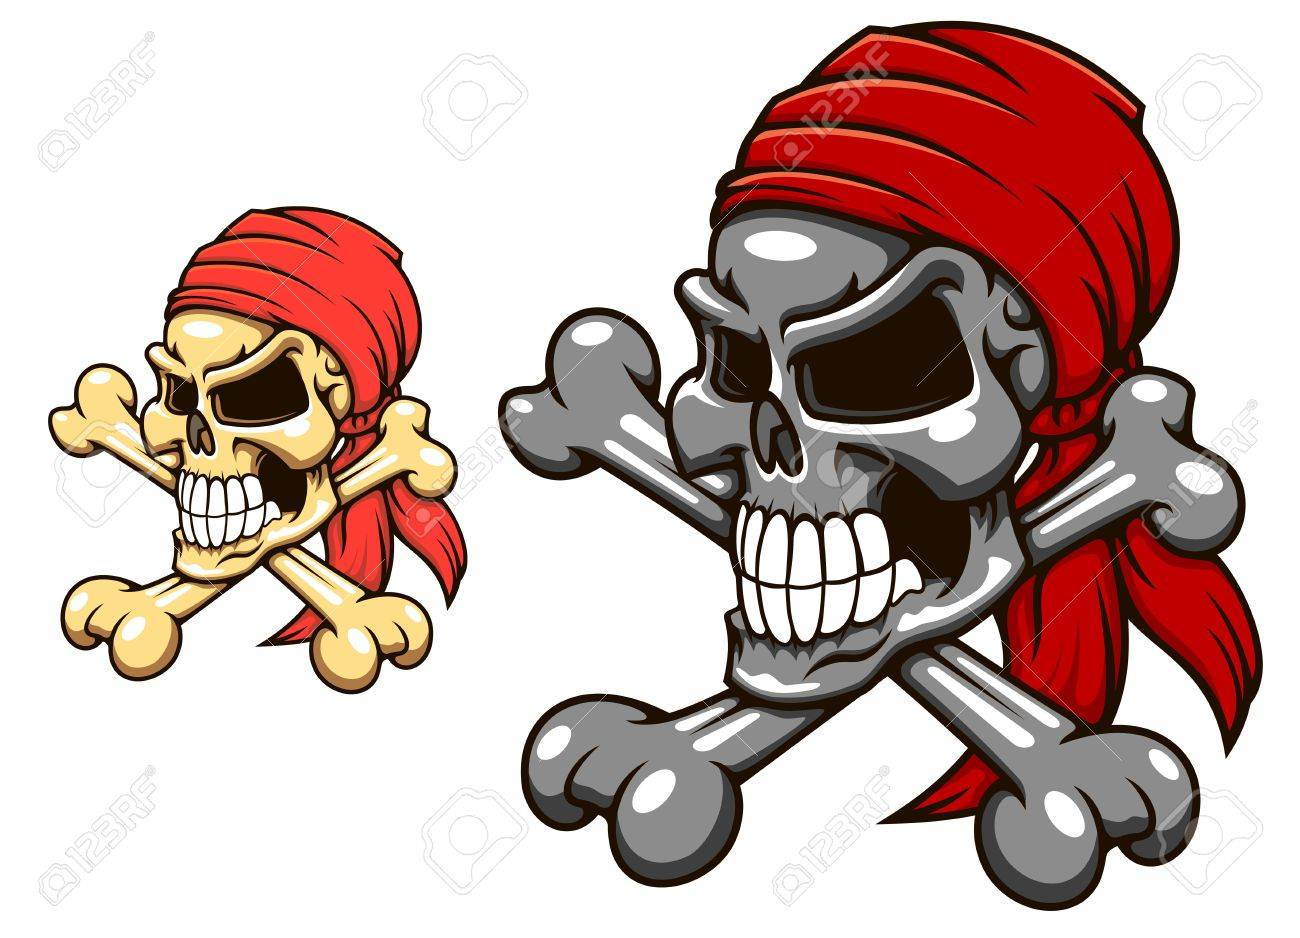 Pirate skull with crossbones in cartoon style for tattoo or mascot design Stock Vector - 21317751